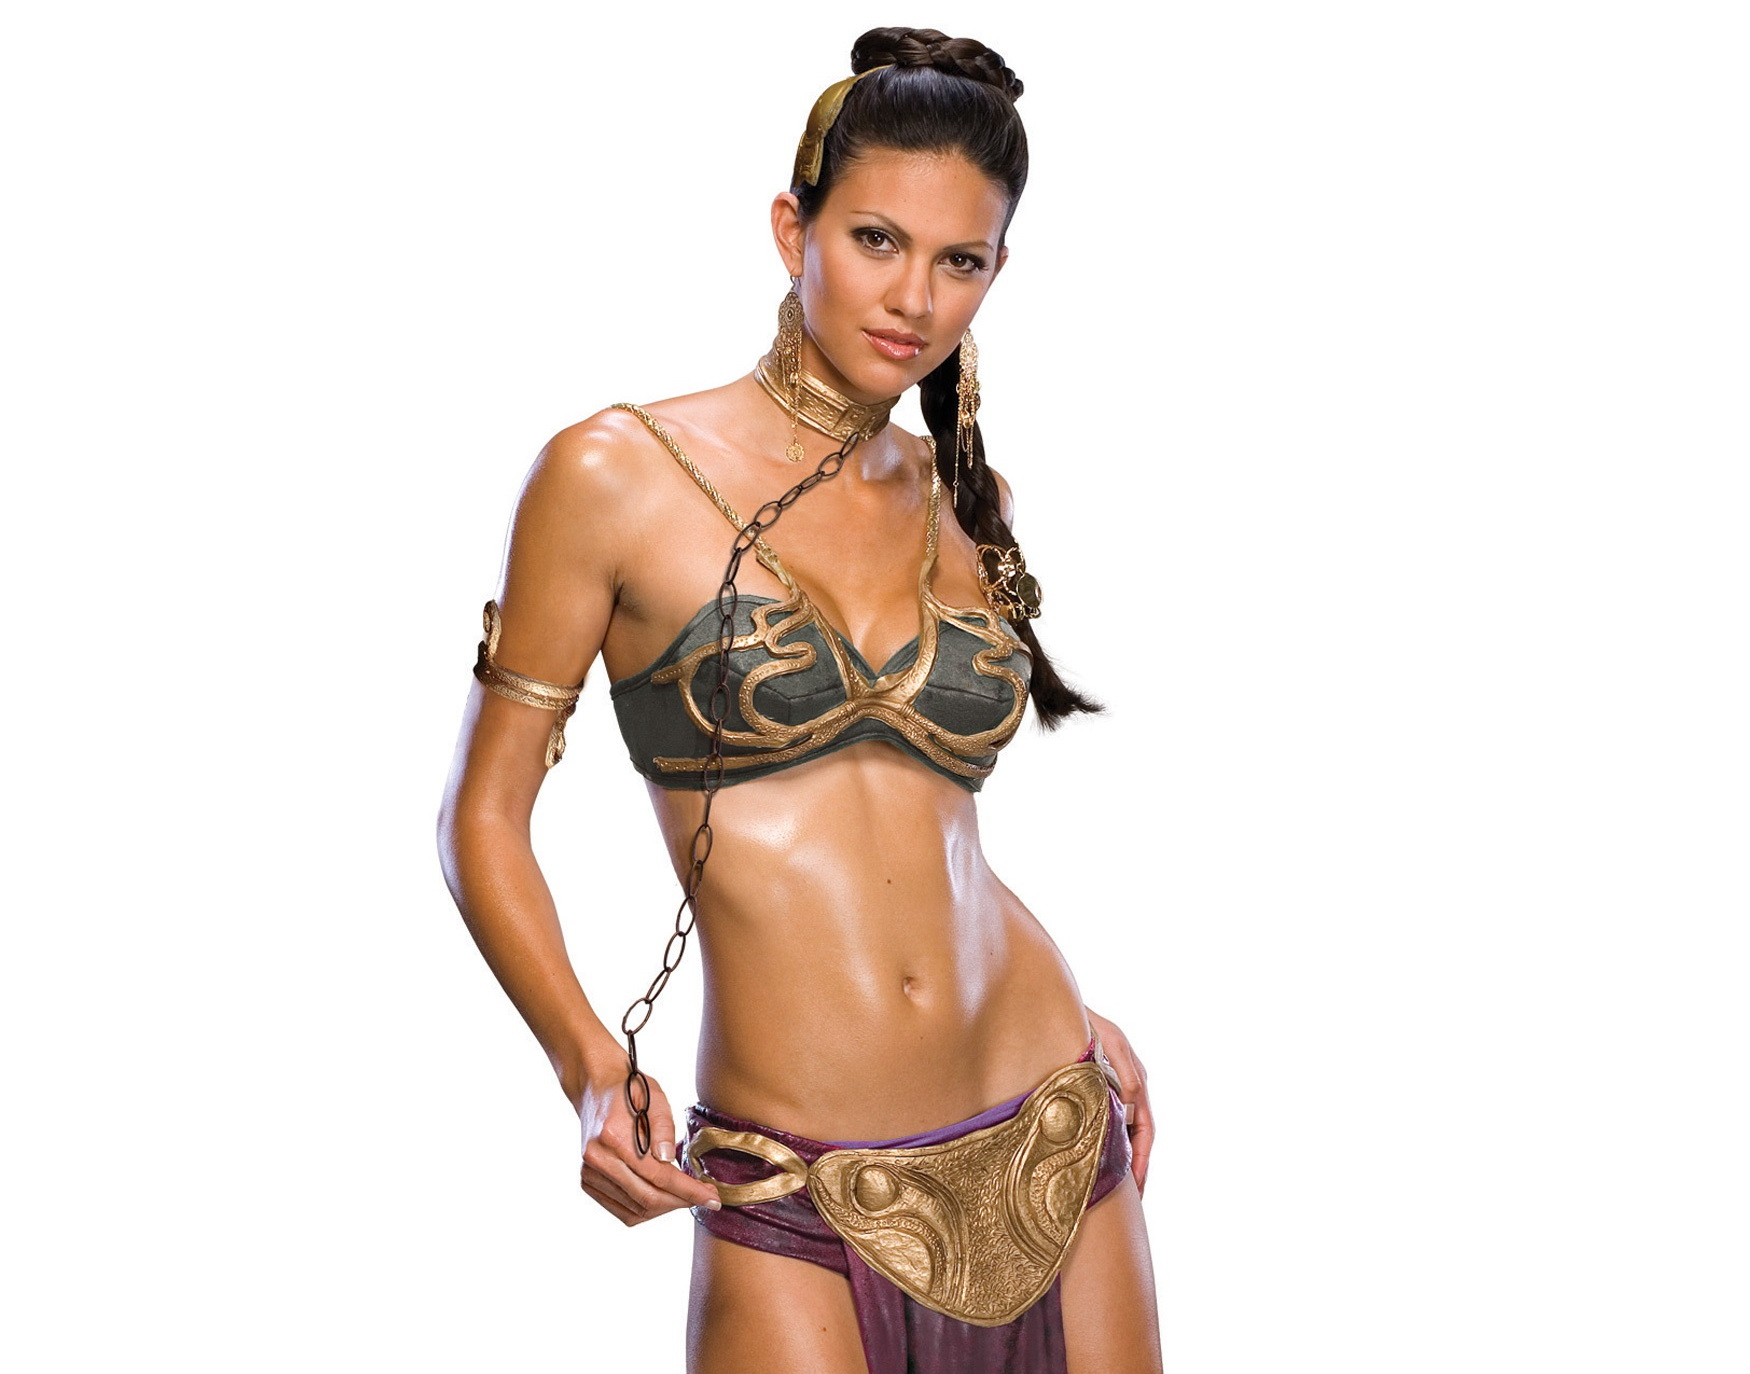 Princess leia sexy wallpapers naked pic